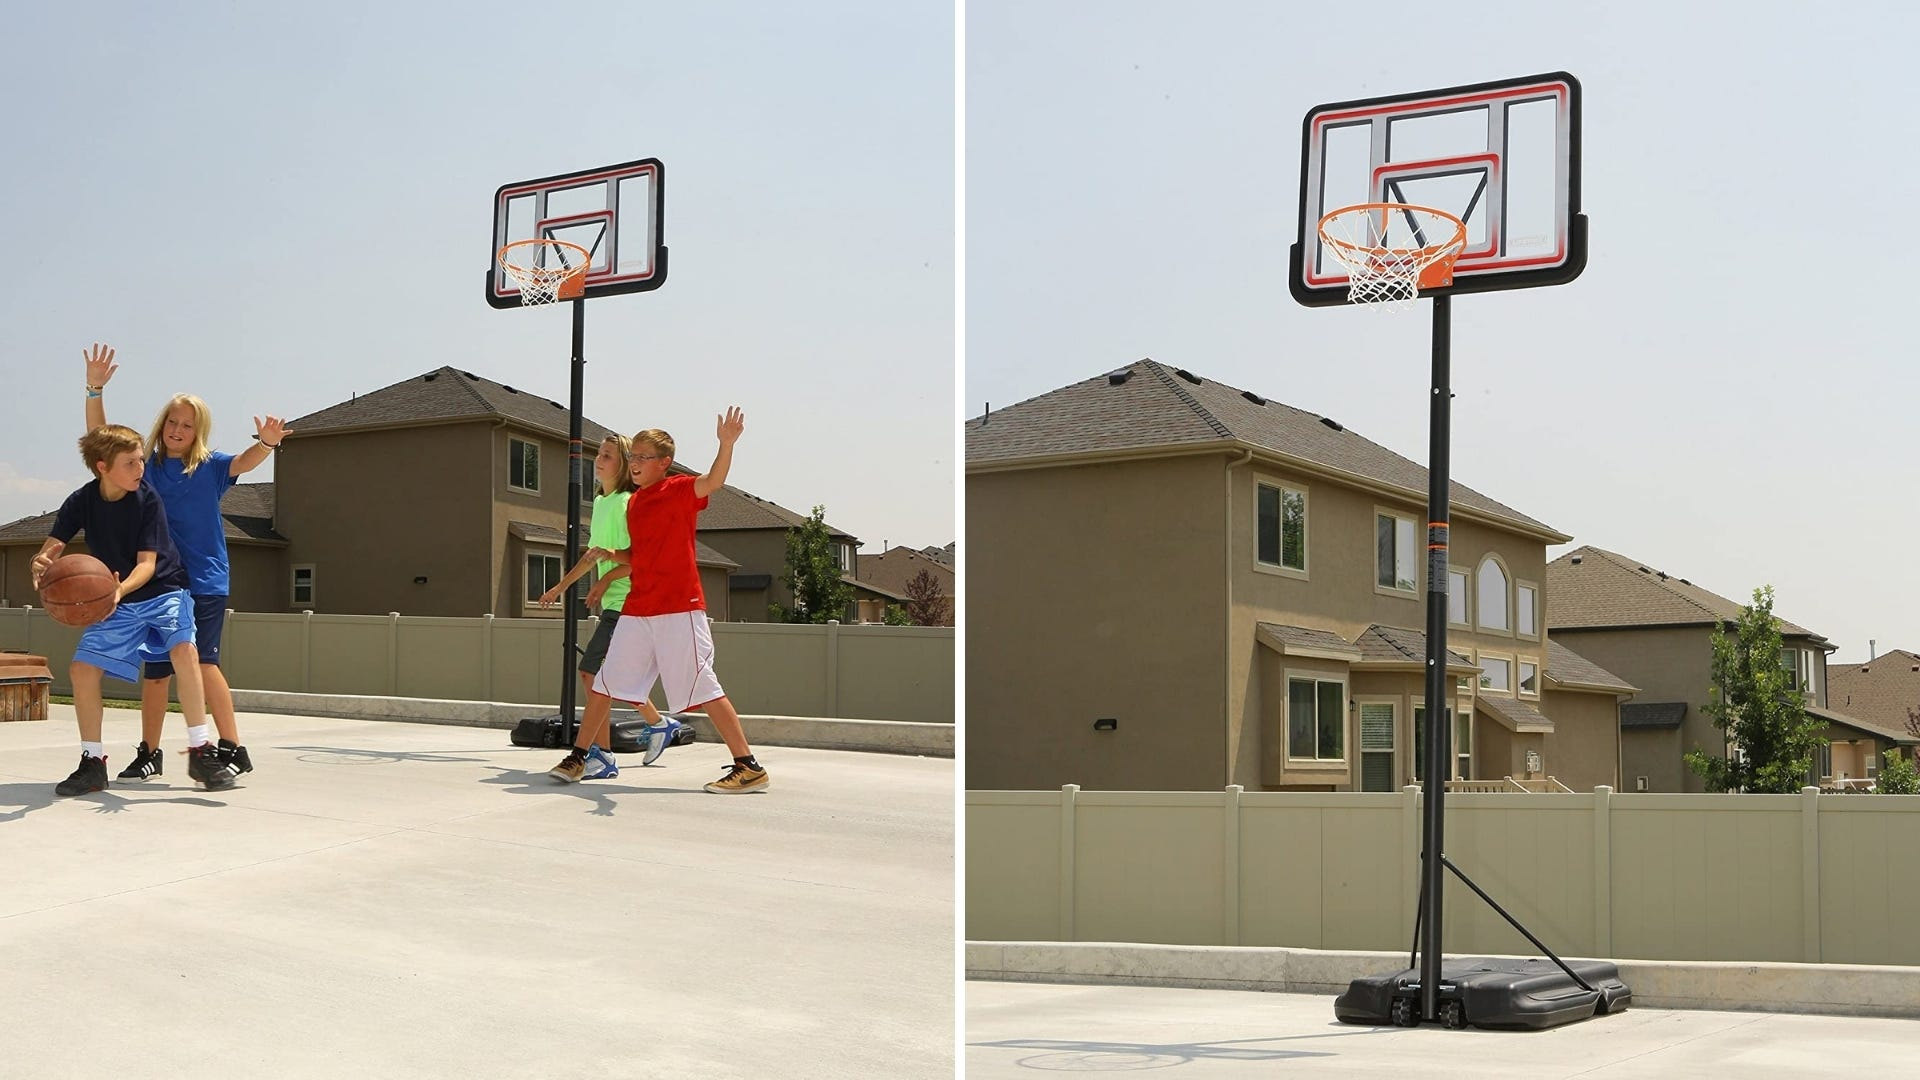 Children playing basketball outside a home.